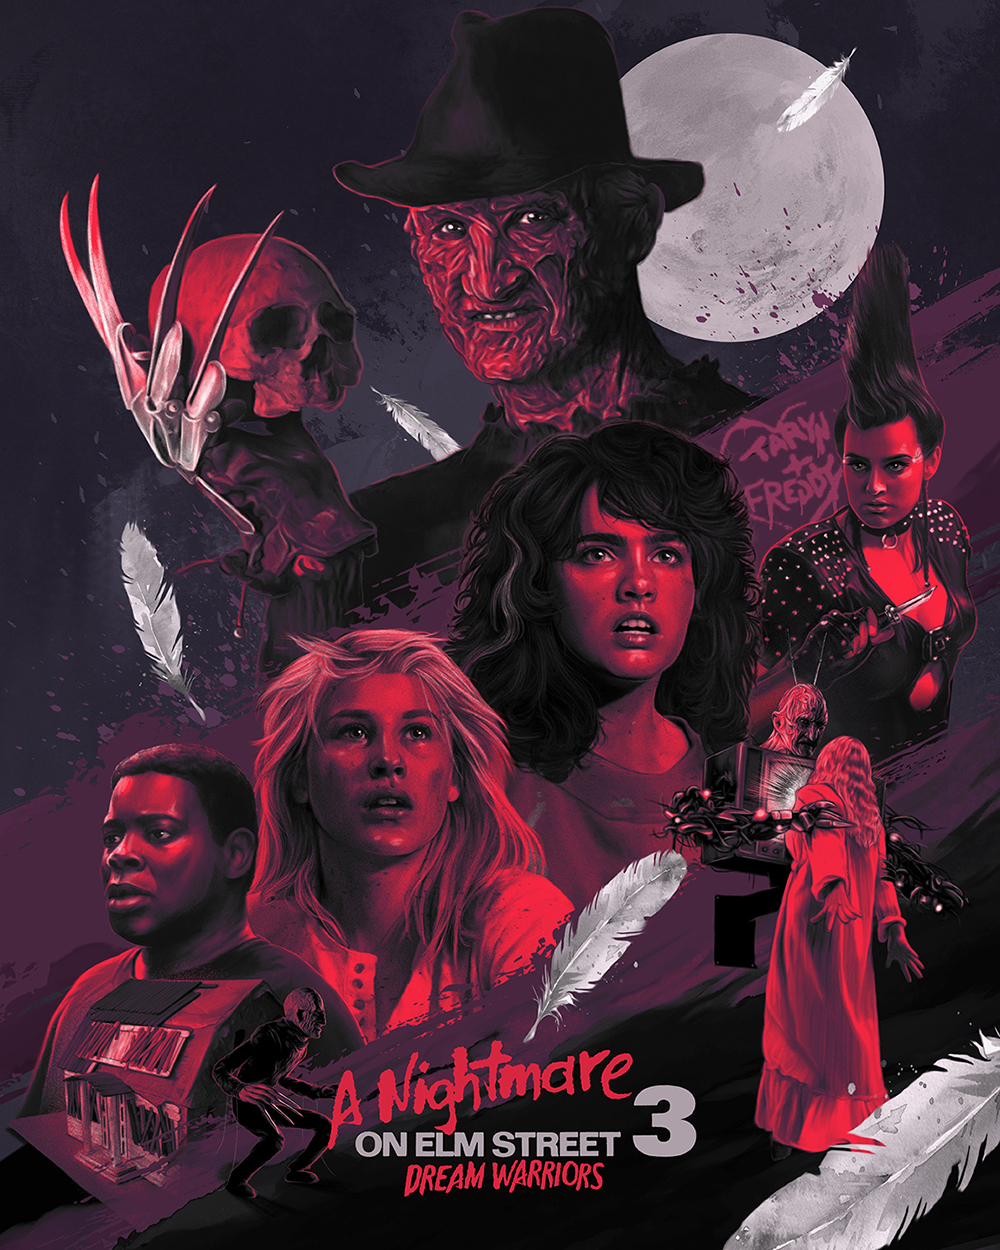 """A Nightmare on Elm Street 3: Dream Warriors"" Tribute Print"